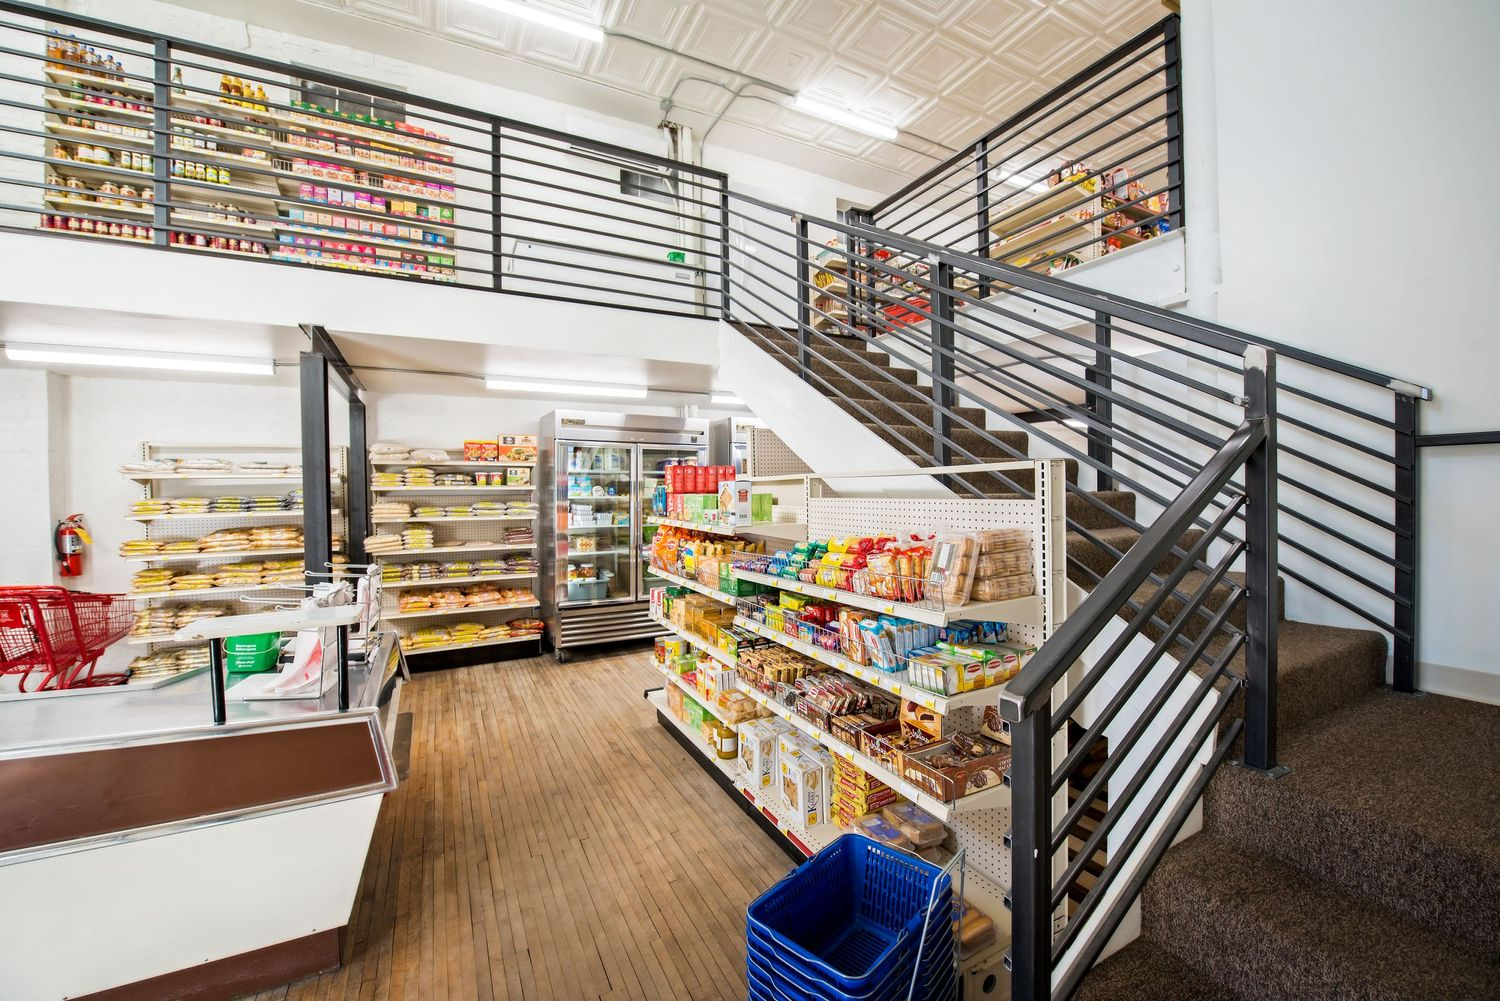 Architectural interior small grocery store Flavor Indian in Brookings, SD